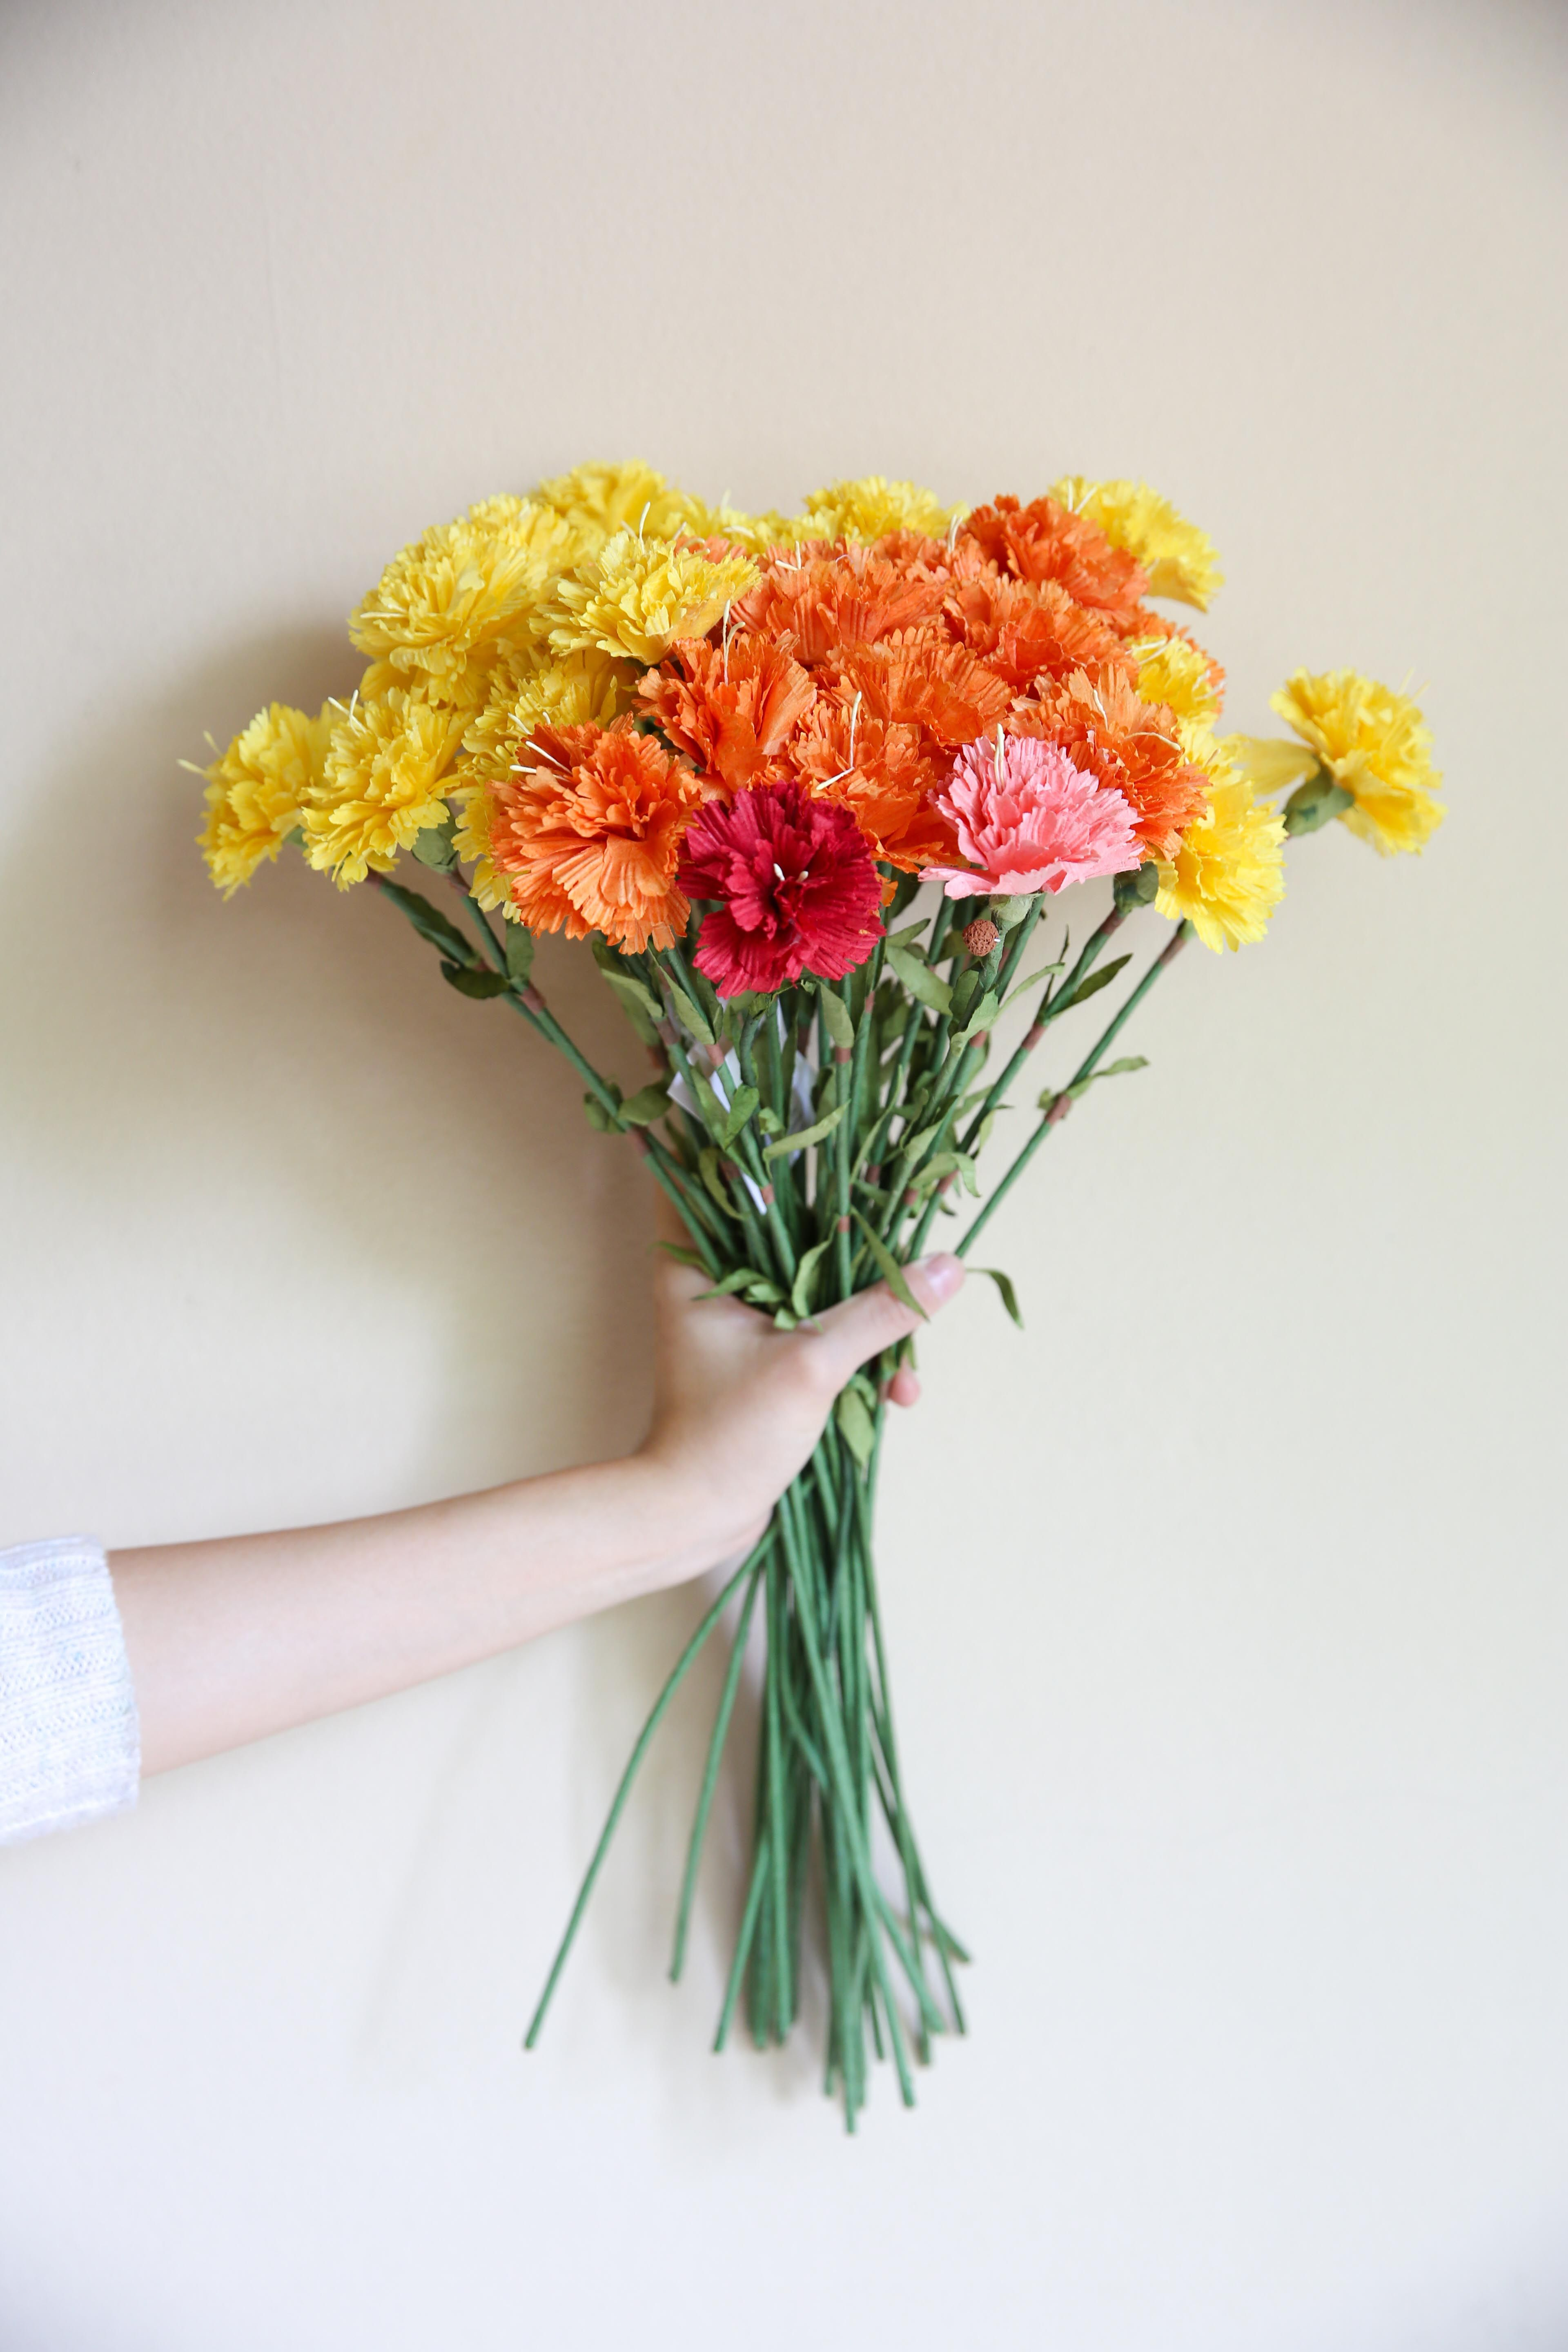 Paper flowers artificial flowers carnation paper flowers paper flowers artificial flowers carnation mightylinksfo Images